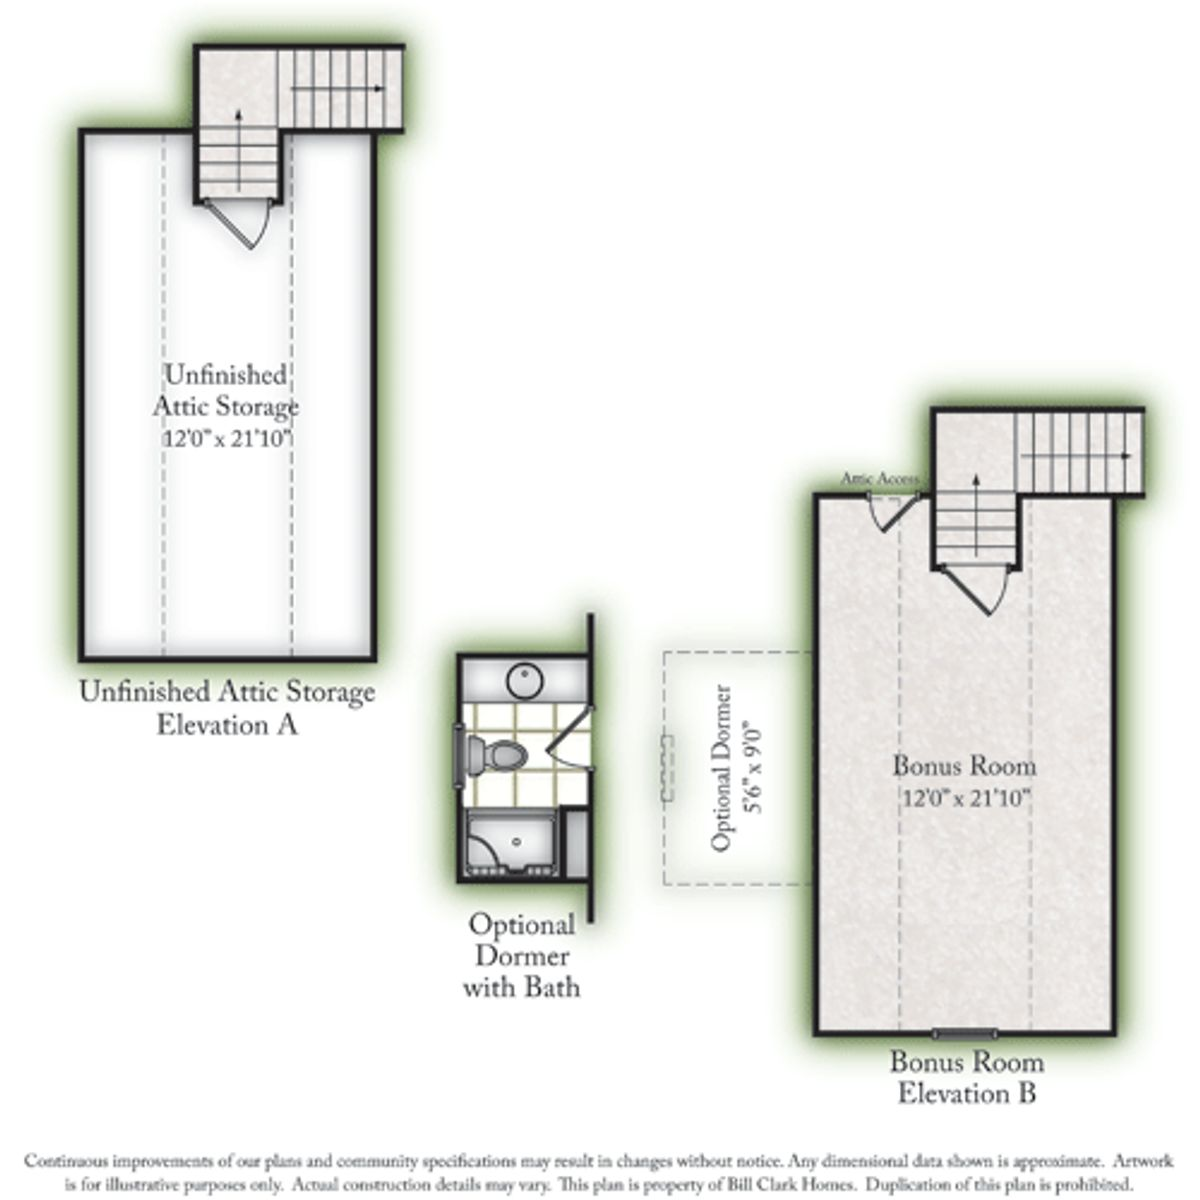 The Birkdale Unfinished Storage & Options